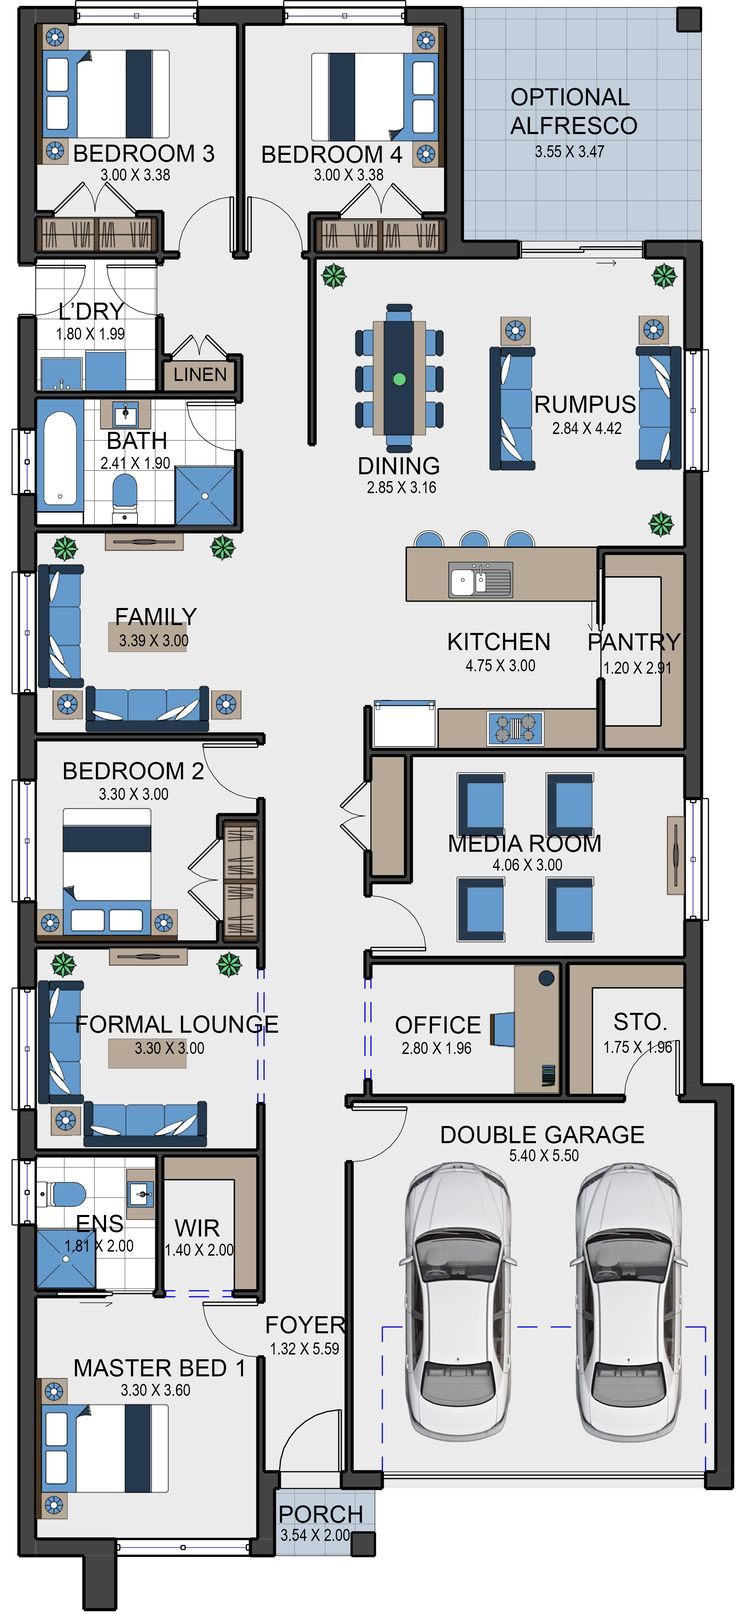 The Luxor 26 offers open living spaces